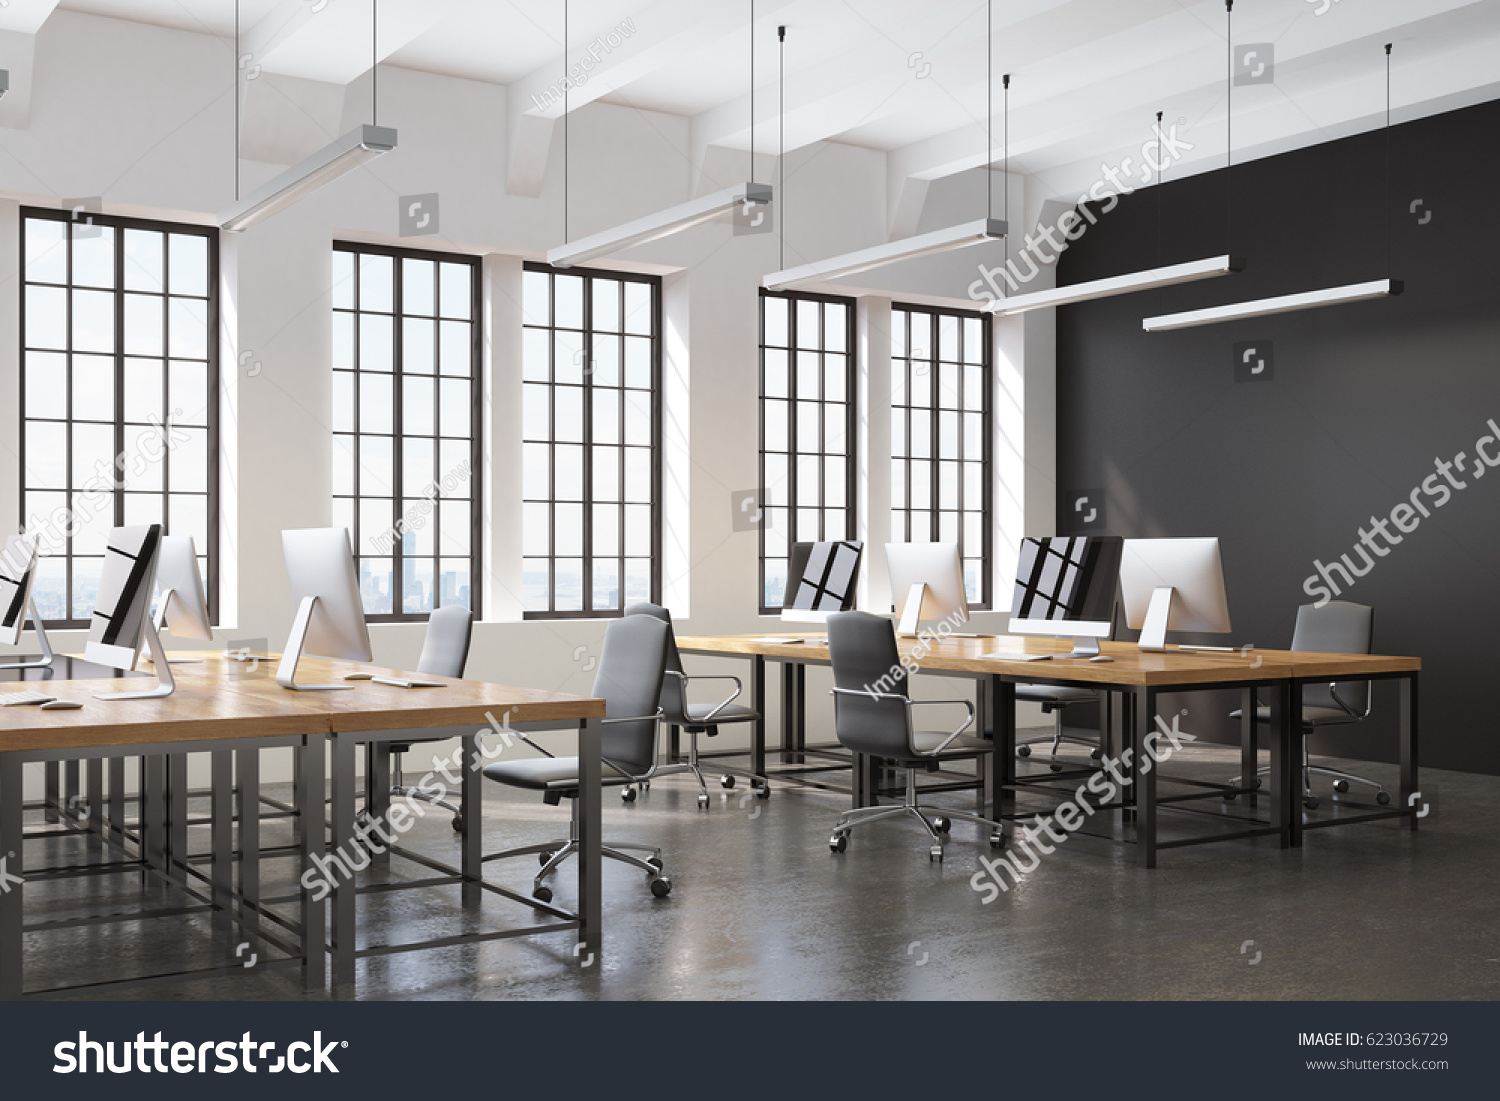 stock-photo-side-view-of-an-open-space-office-with-a-black-wall-many-tables-with-computers-on-them-and-a-623036729